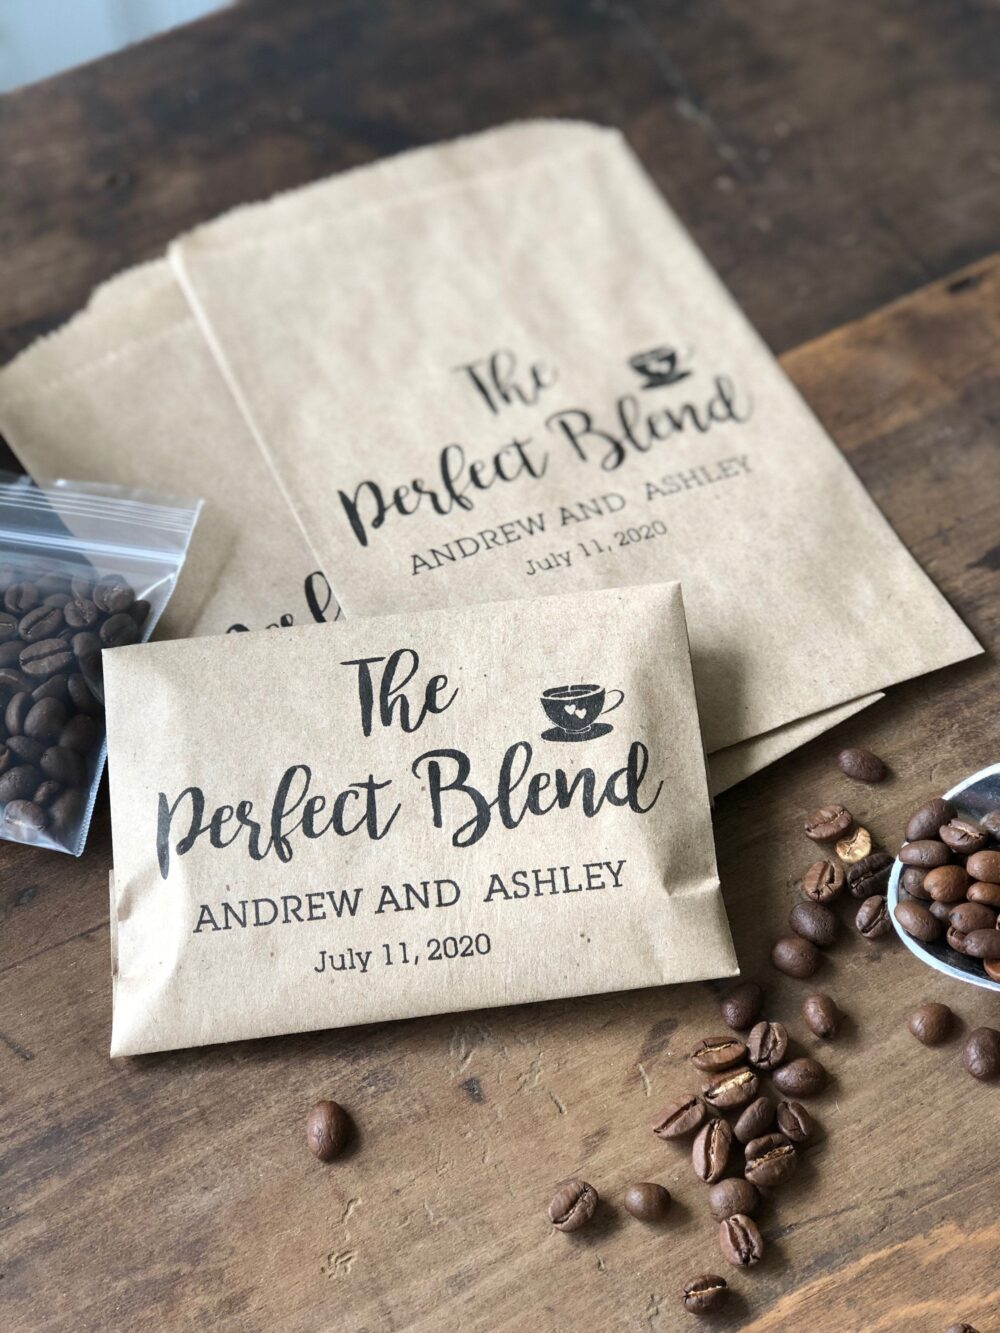 Coffee Favor Bags- Wedding Favors - Bridal Shower Favors- Bean Espresso Set Of 25 Custom Paper Bags The Perfect Blend